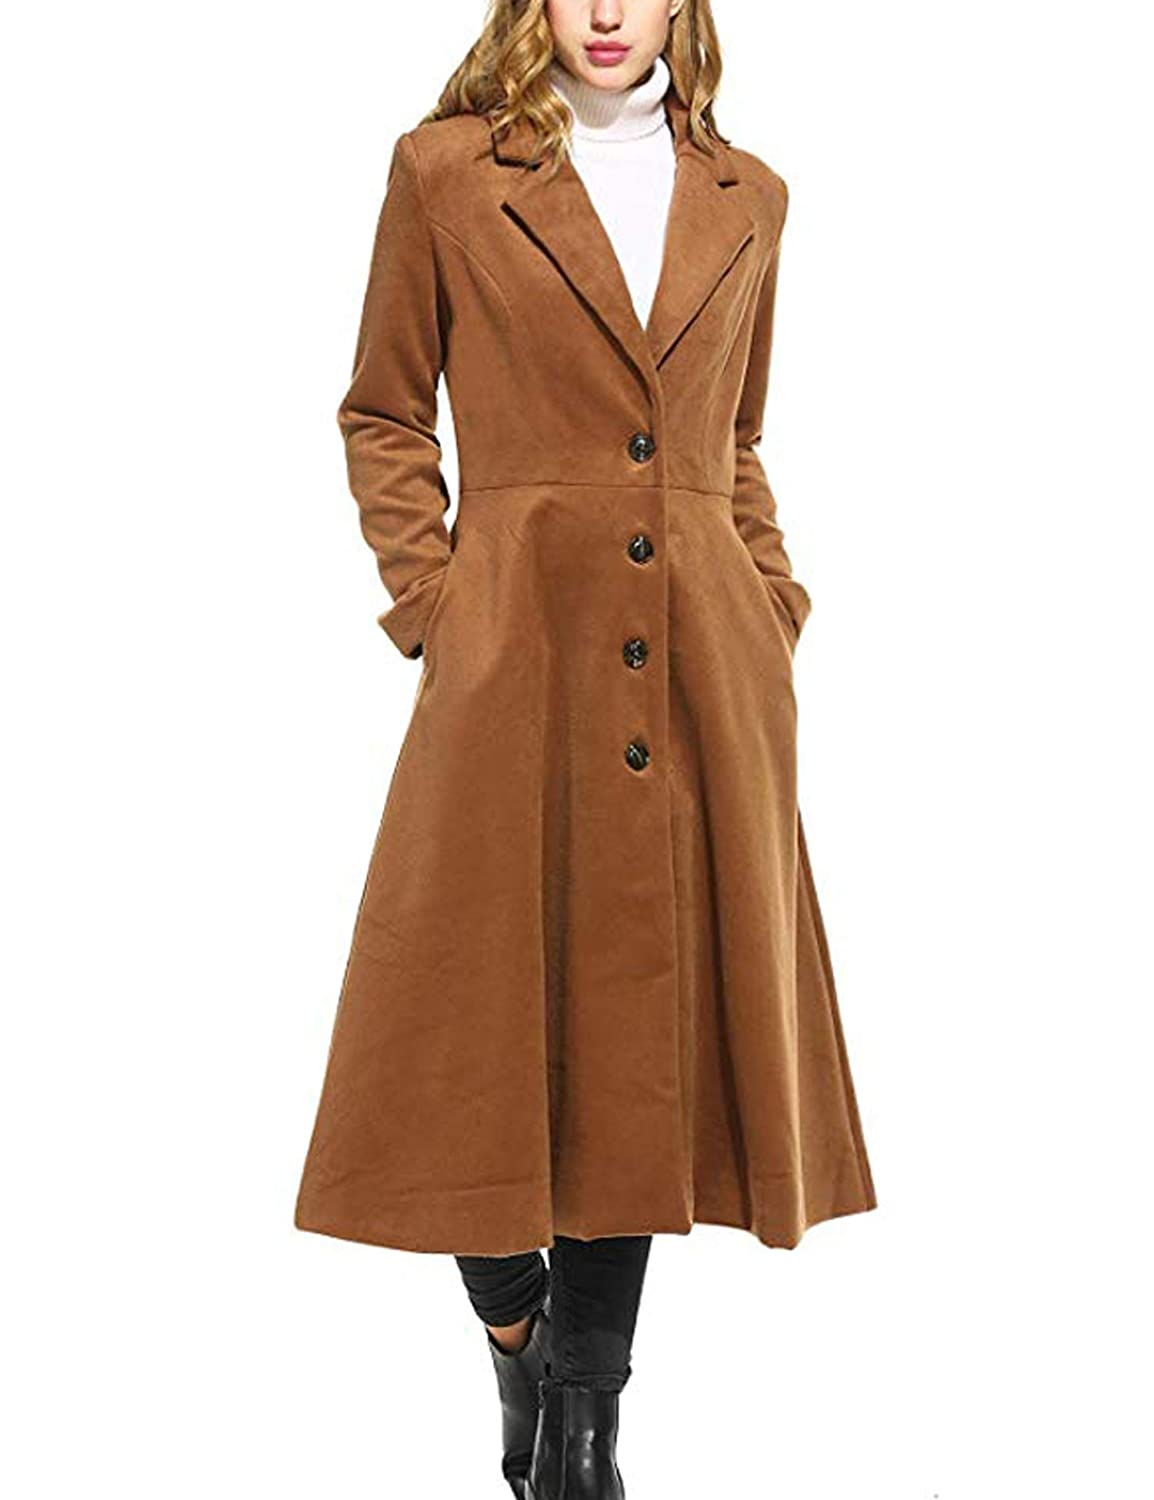 Palazen Women Single Breasted Overcoat Long Trench Coat Outerwear, S-3XL